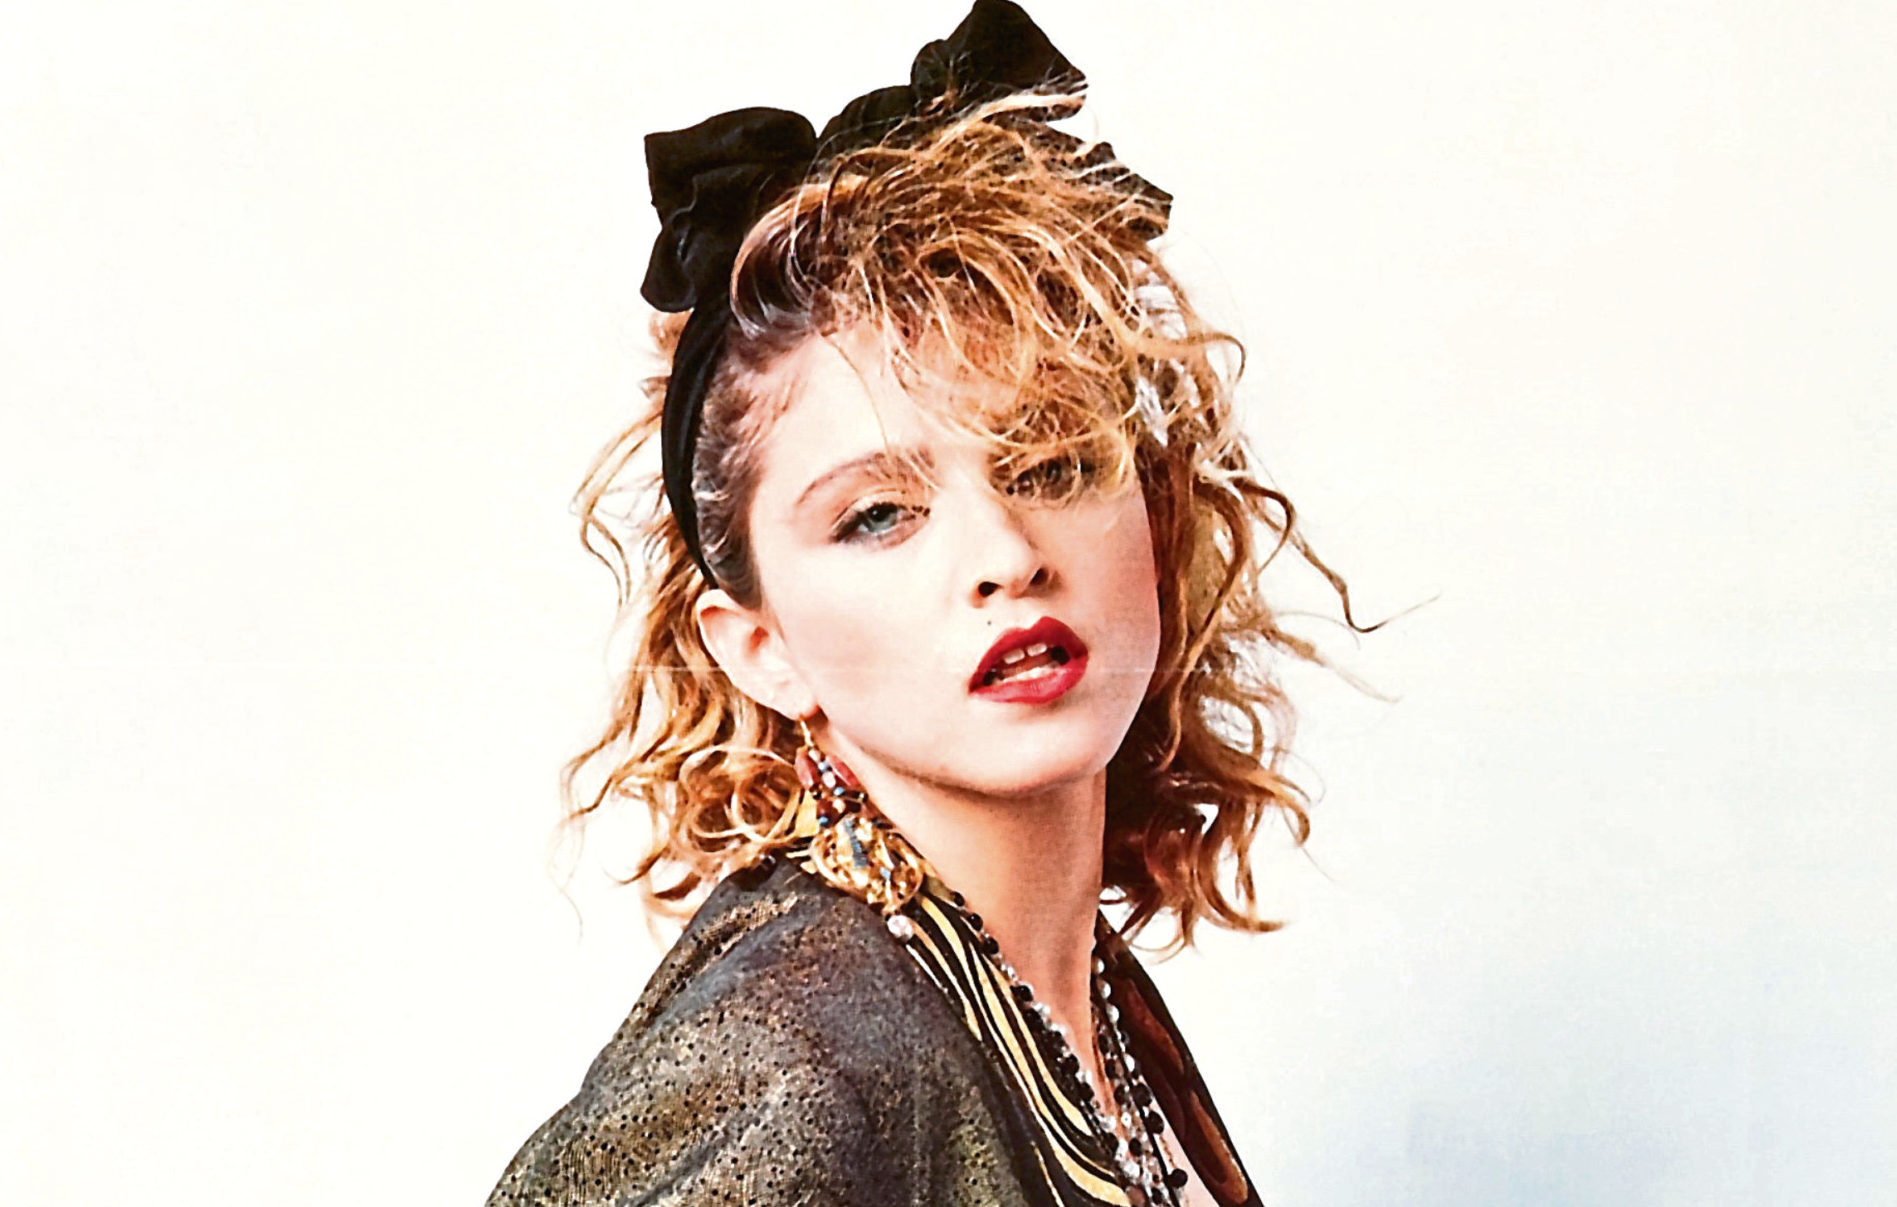 Madonna on the poster of Desperately Seeking Susan, 1985 (Allstar/ORION PICTURES)